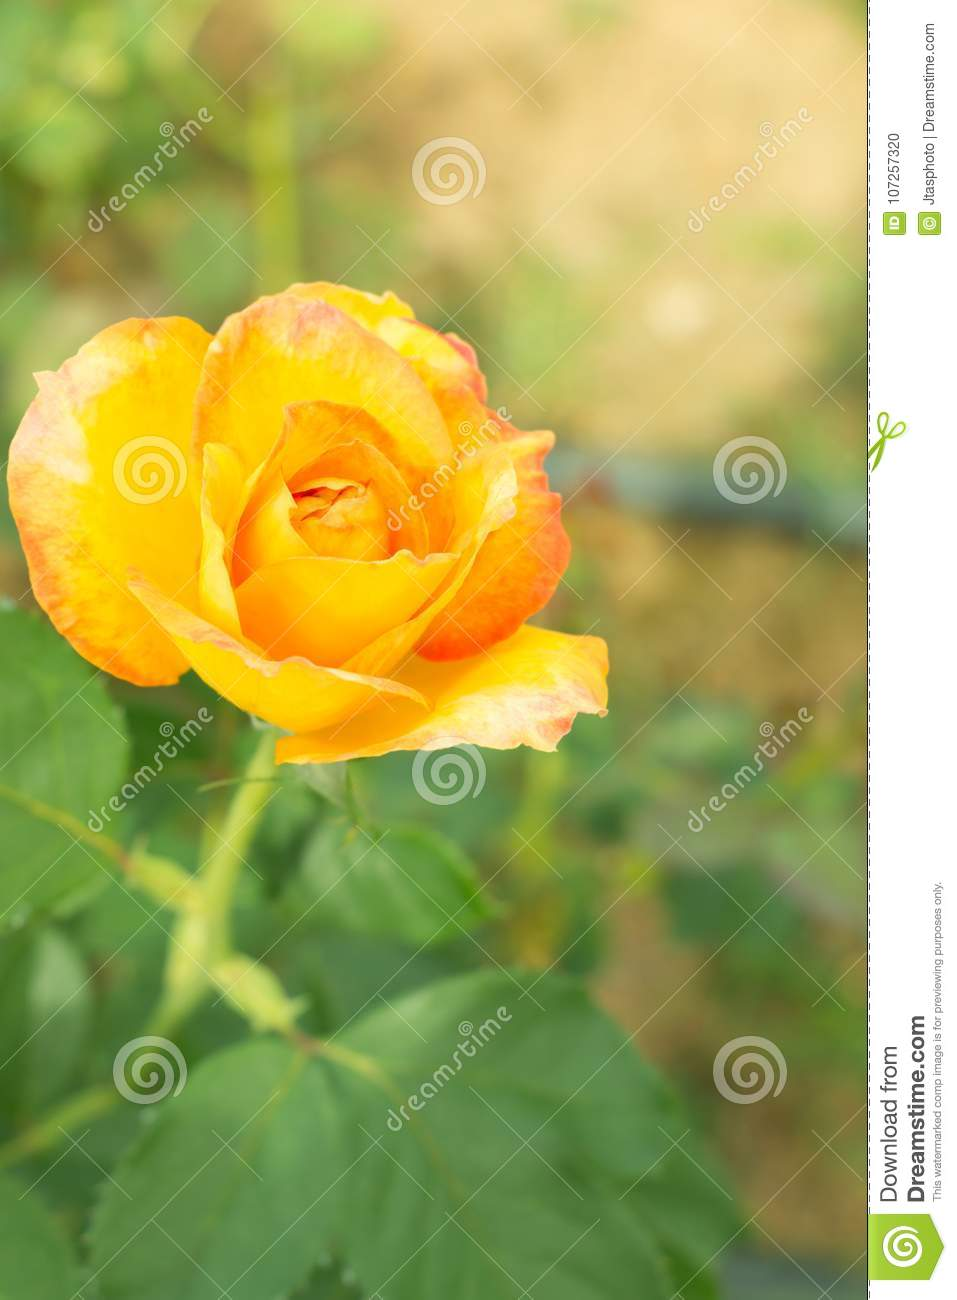 Single Yellow Rose Stock Photo Image Of Meaning Present 107257320